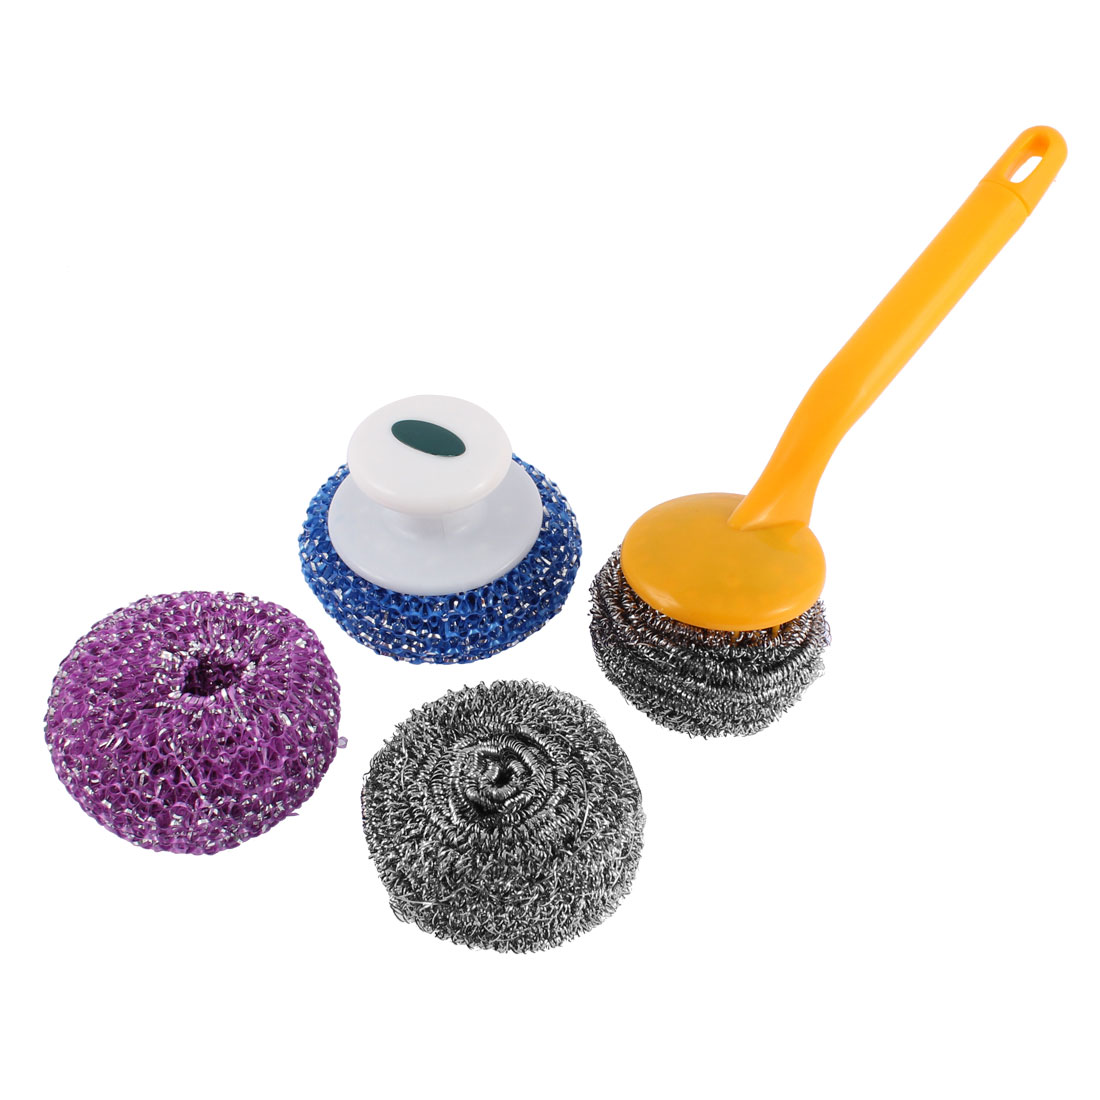 Home Kitchen Pan Pot Scrub Cleaning Brush Steel Wire Ball 4 in 1